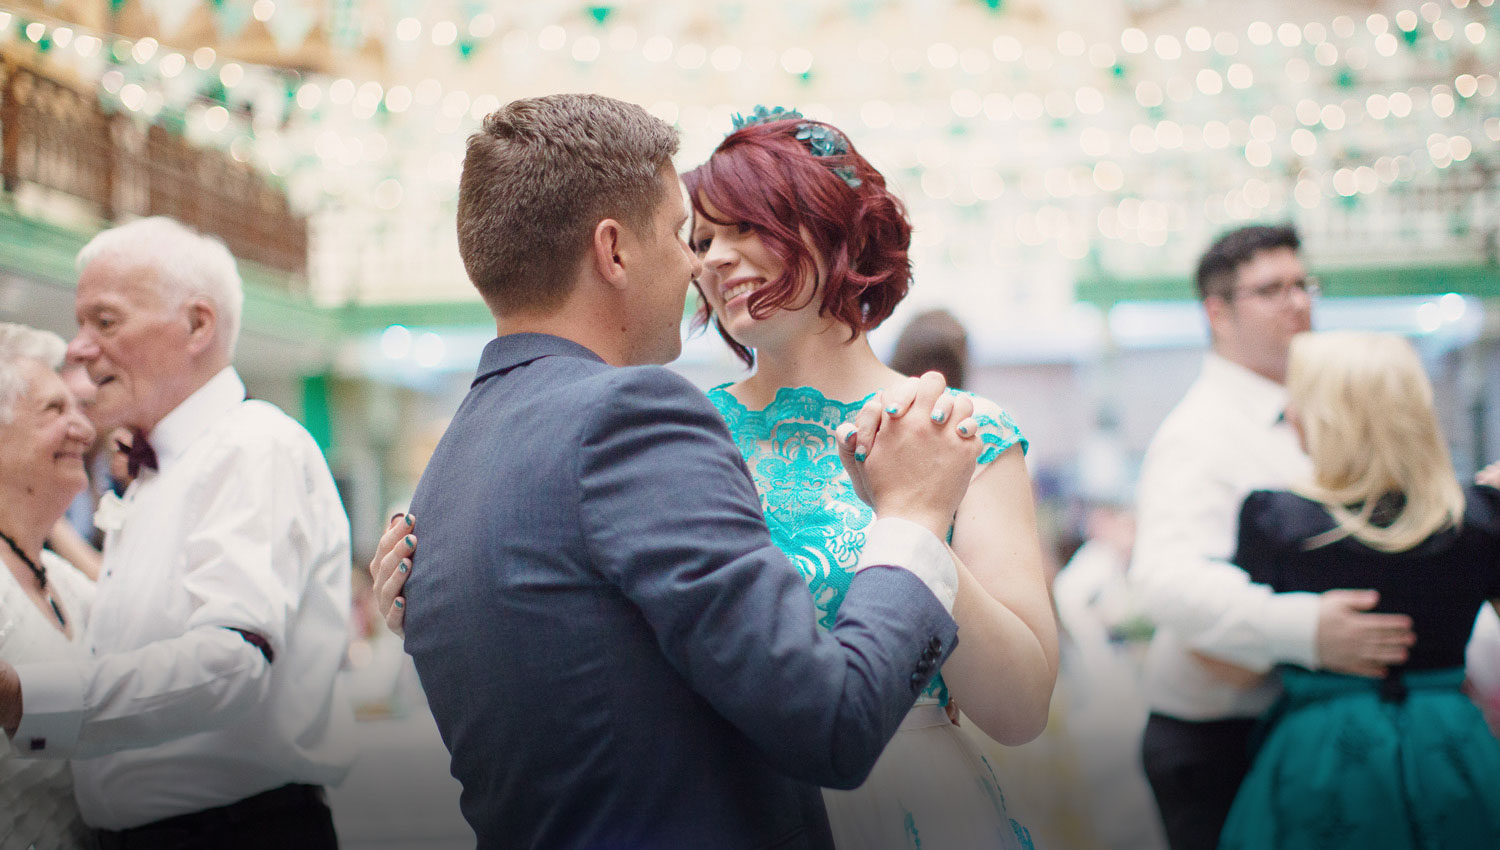 A beautiful couple with a turquoise wedding dress dancing at their wedding at Manchester Victoria Baths